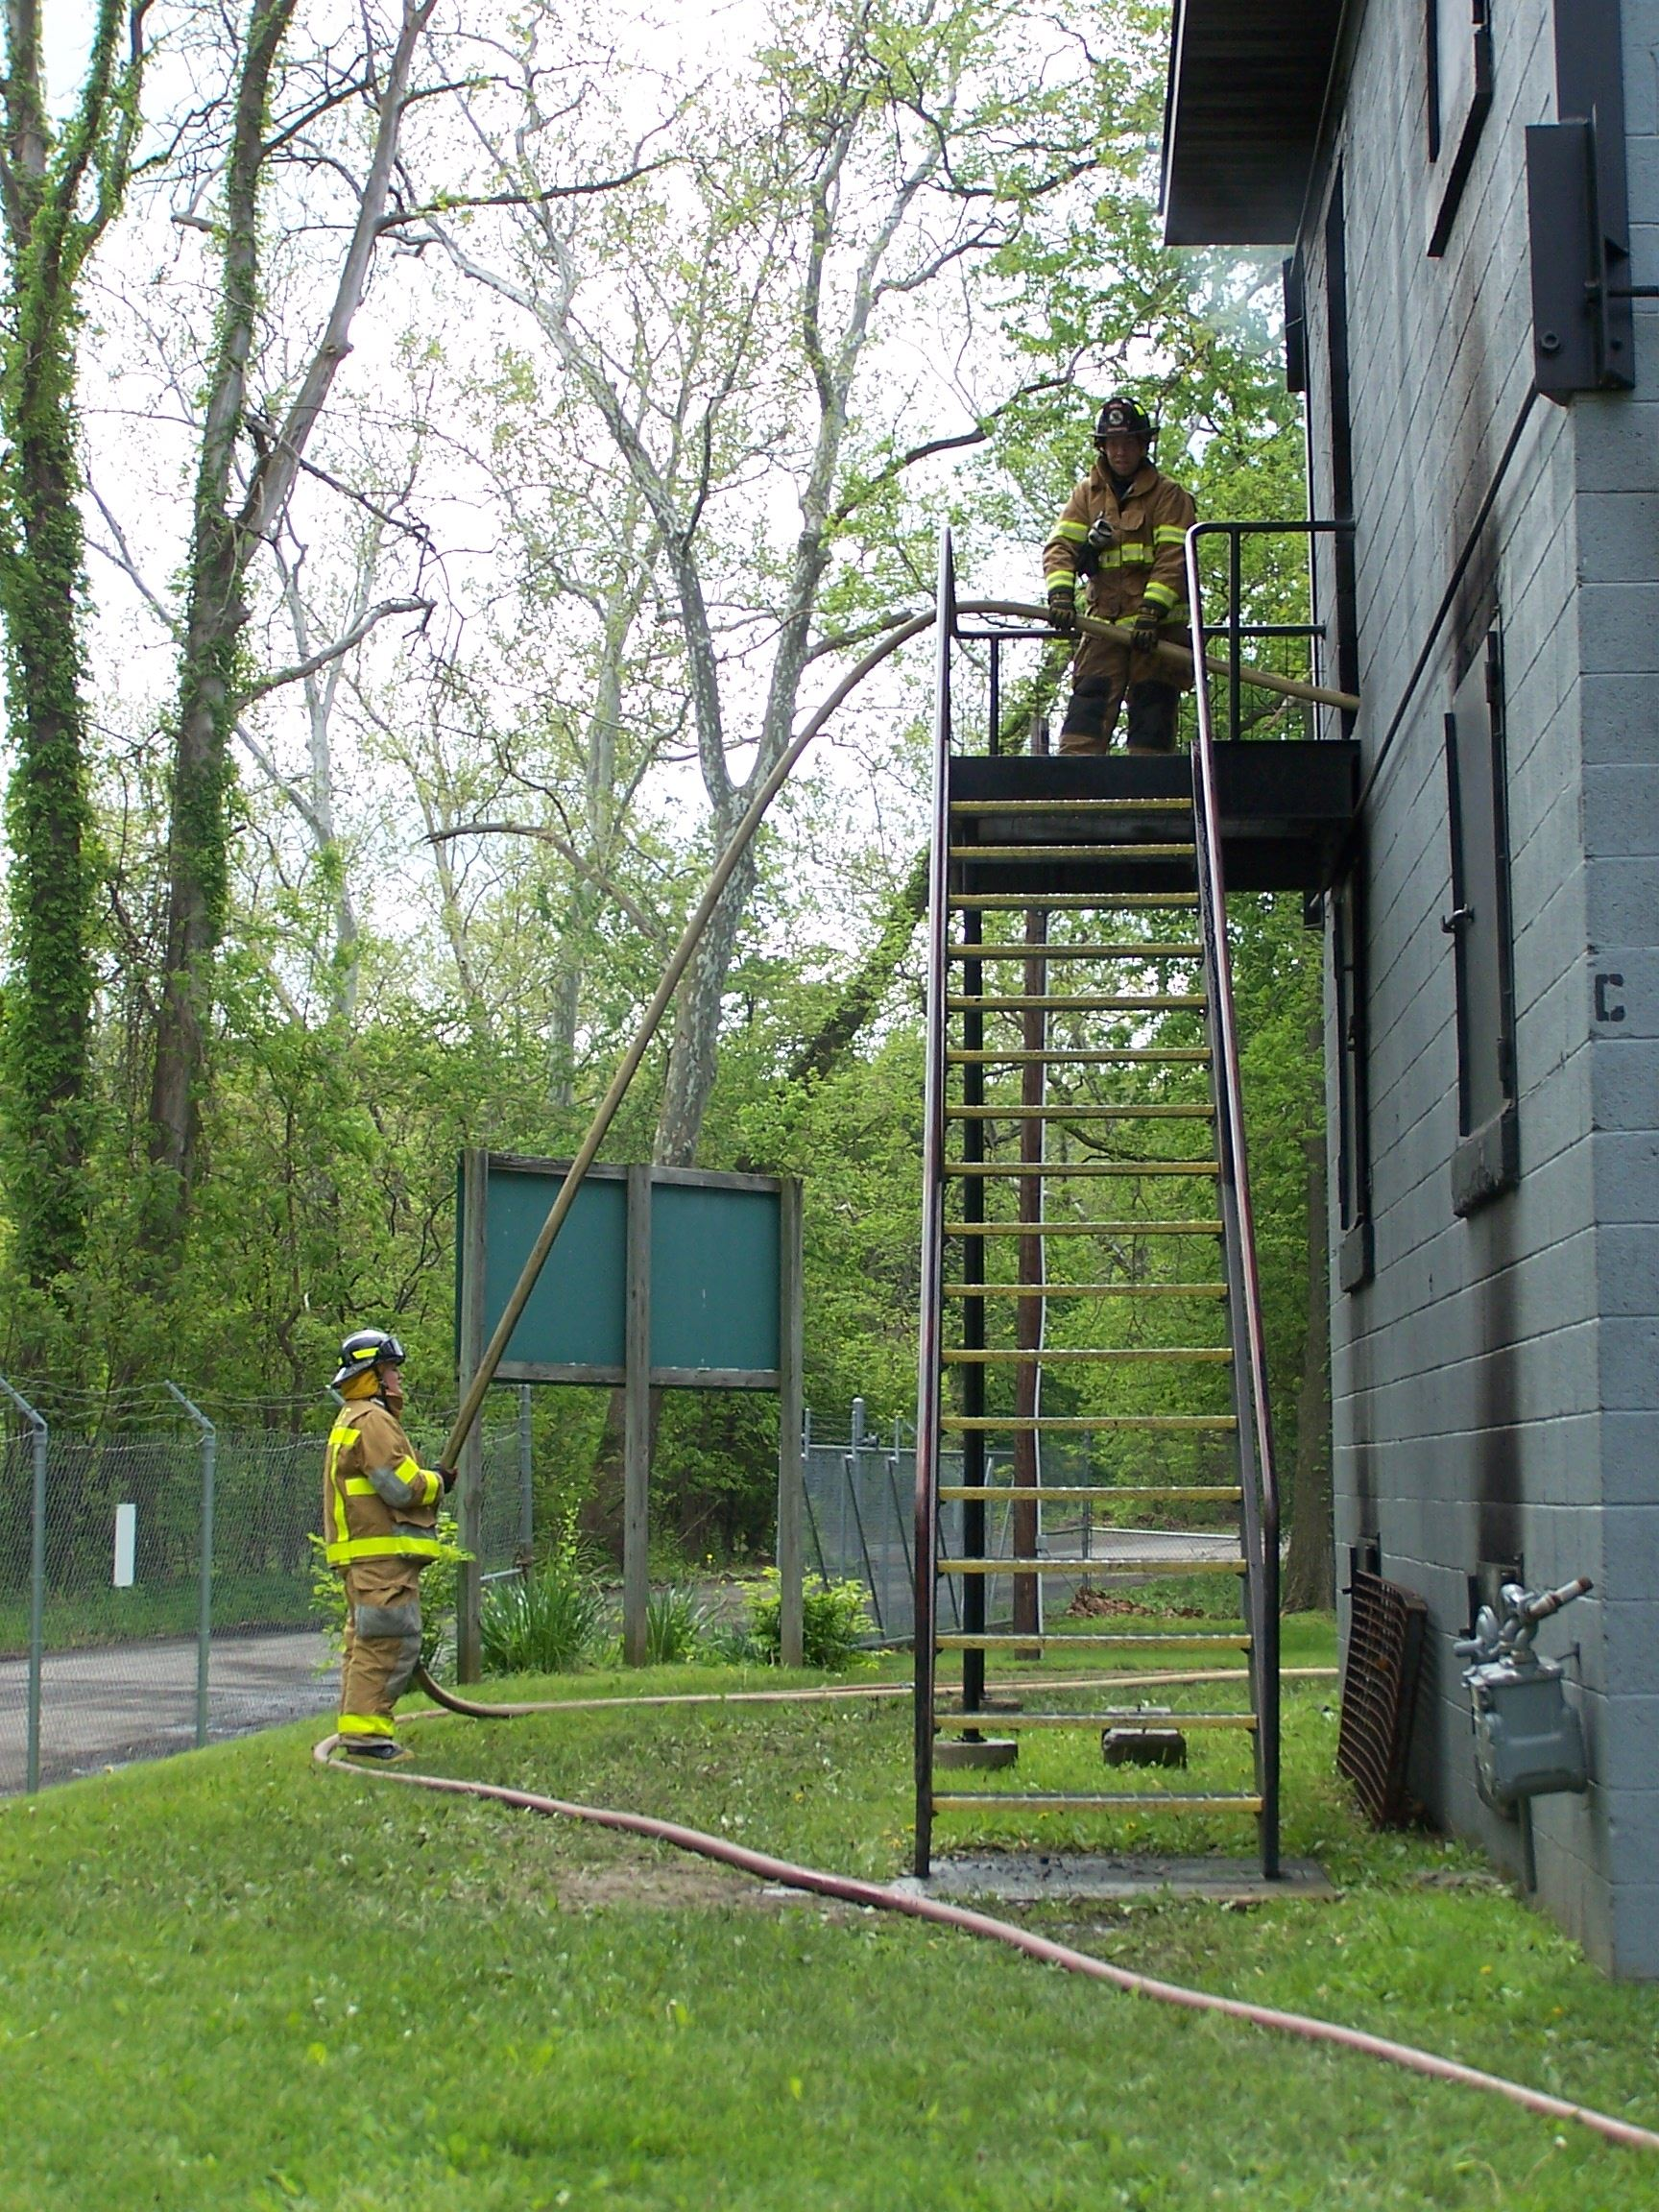 Two firefighters on the side of a training facility holding a hose. One firefighter is on the top of a staircase while the other is on the ground.